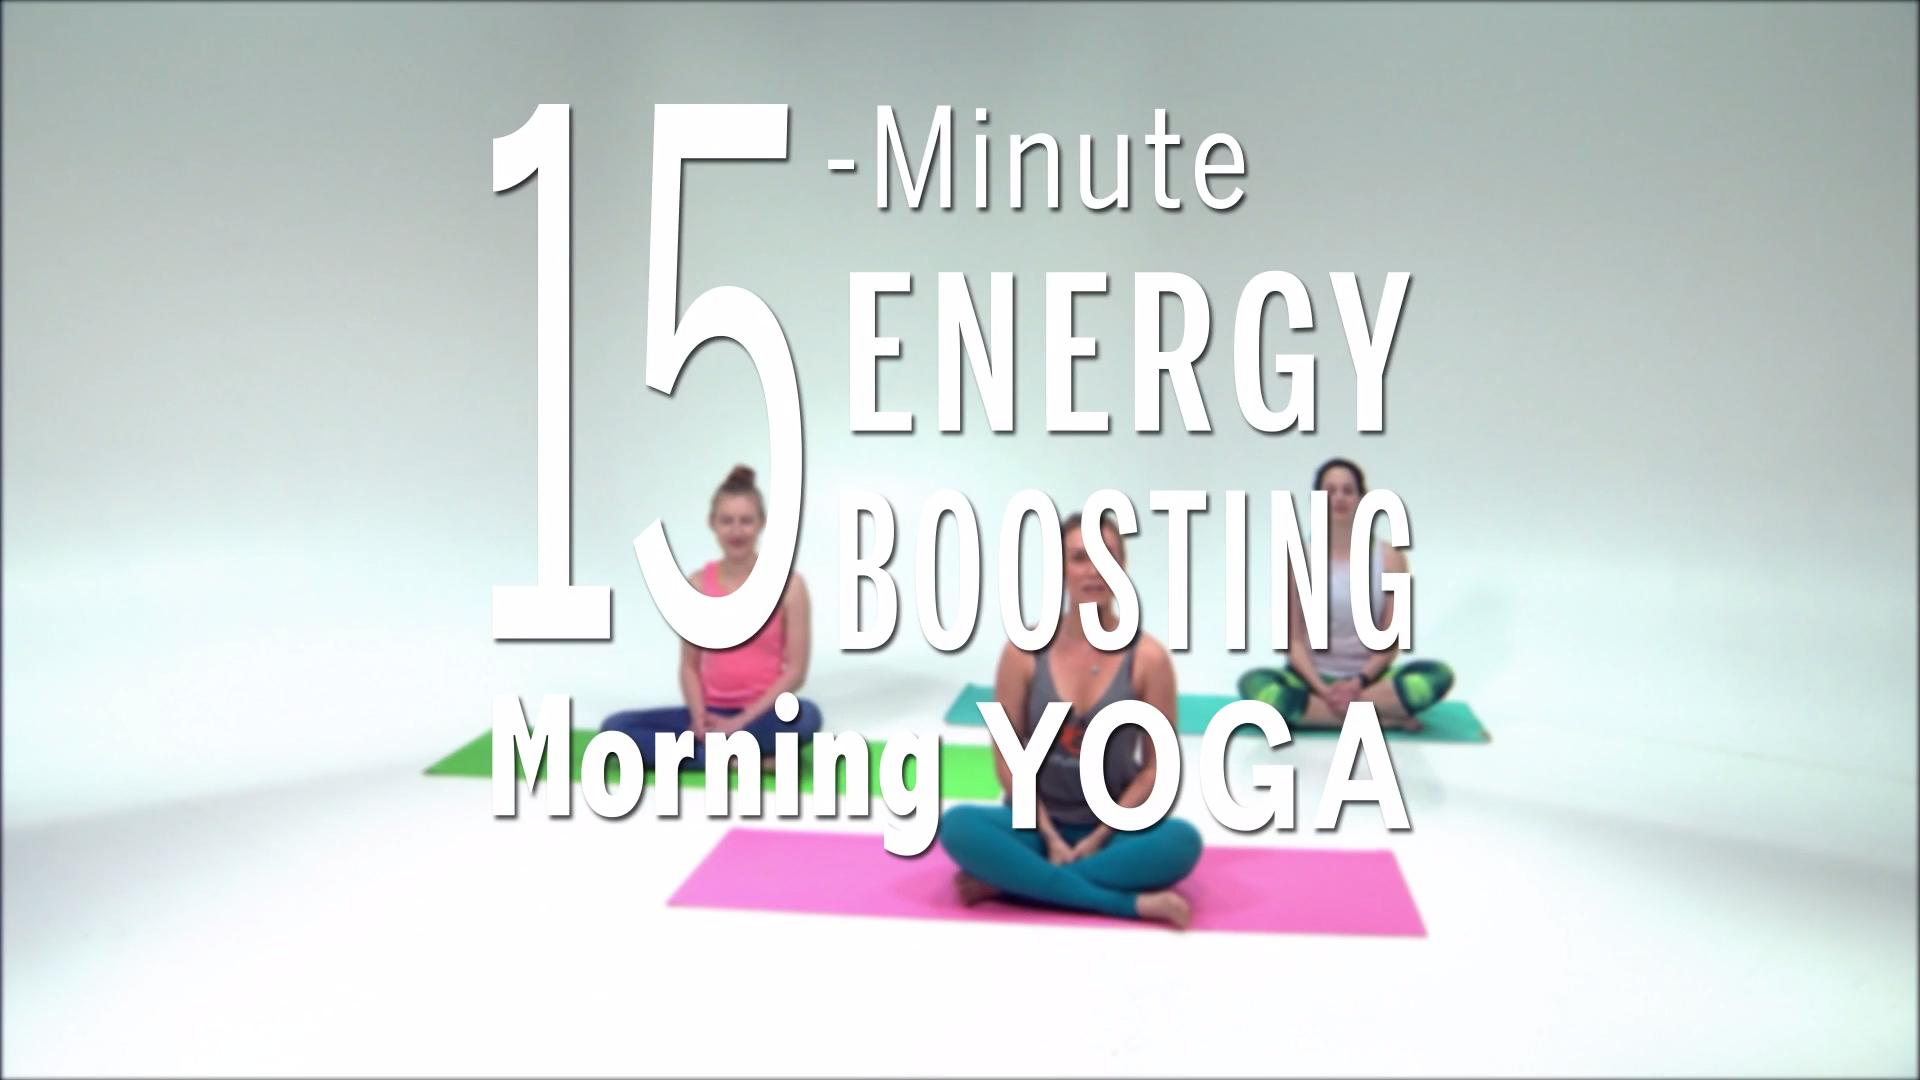 This Morning Yoga Sequence Will Boost Your Energy In 15 Minutes